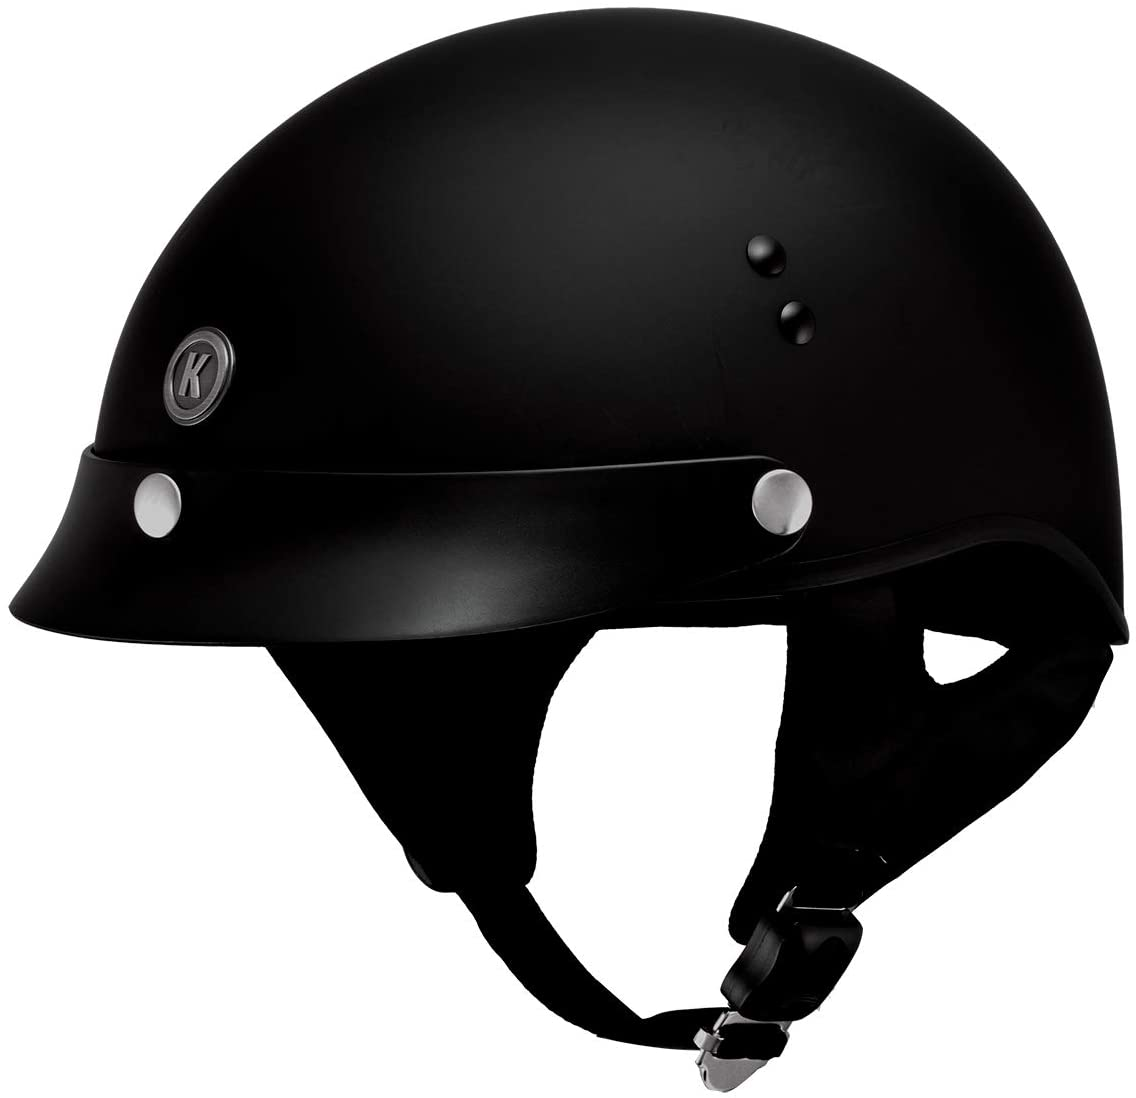 Klutch K-3 'Cruise' Flat Black Half Face Motorcycle Helmet with Snap On Visor - Medium